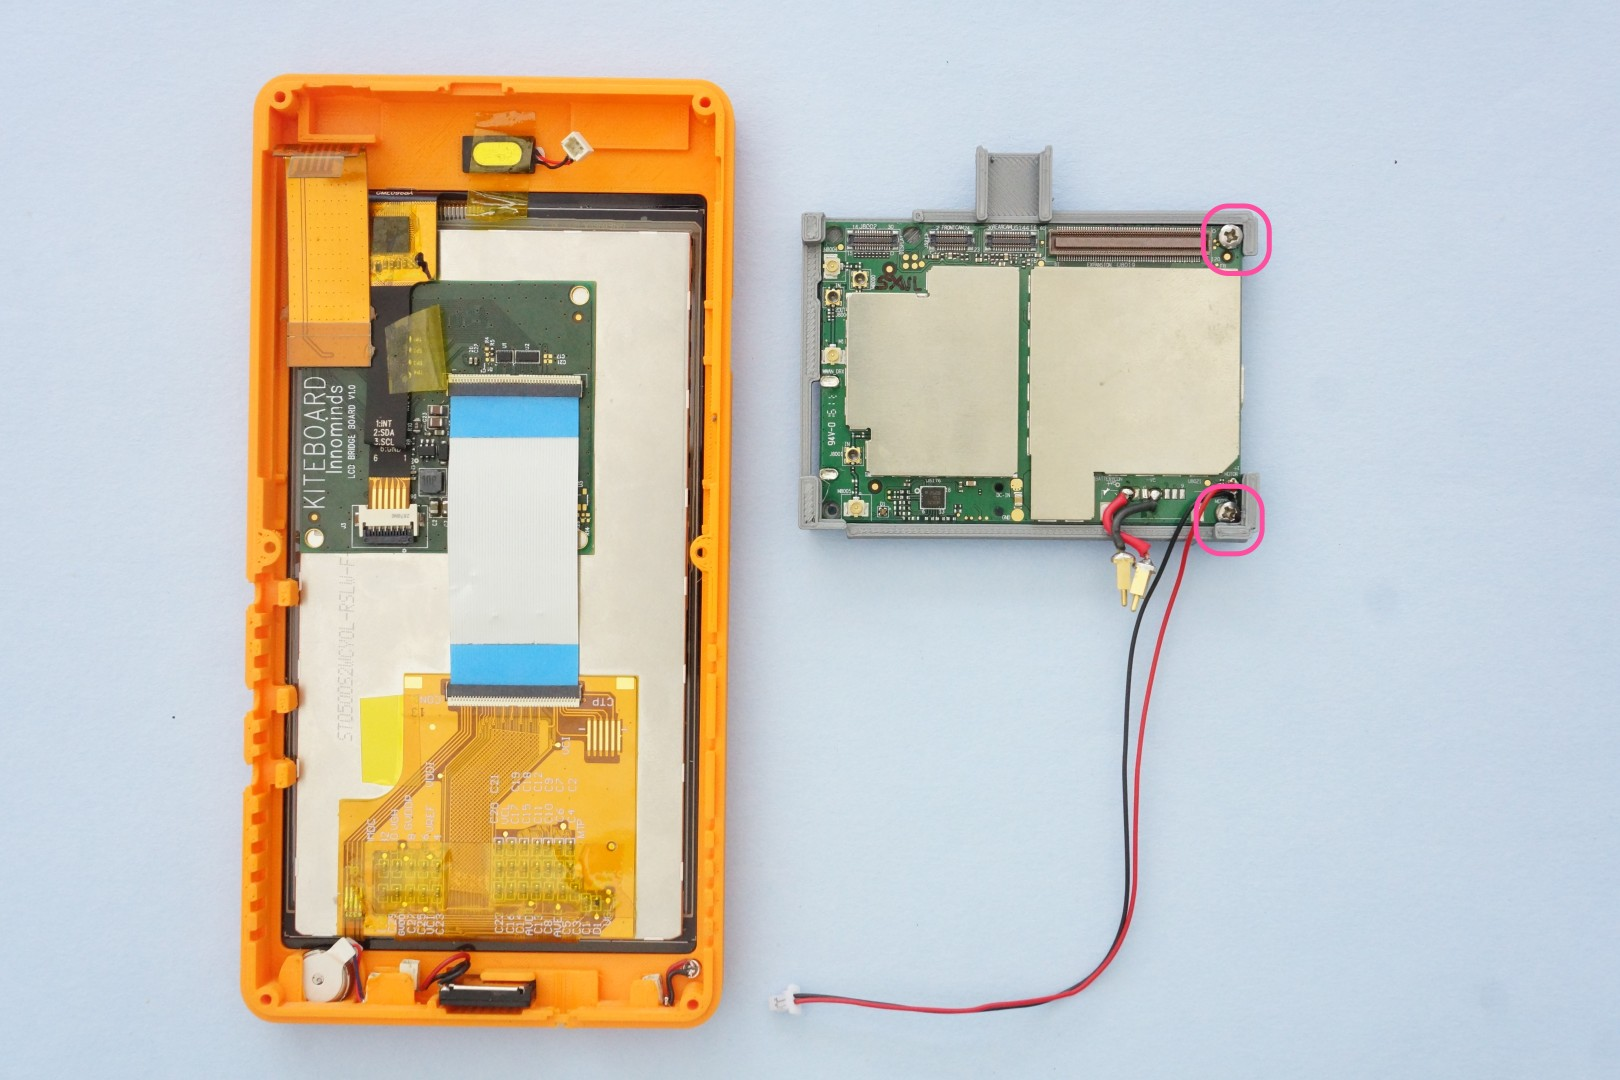 Building Poorna Your First Kitephone Electronic Components Including Circuit Boards Sit In A Pile Before Kite Includes An 8 Mp Autofocus Camera Module The Board Holder Has Slot Designed For Sits Inside